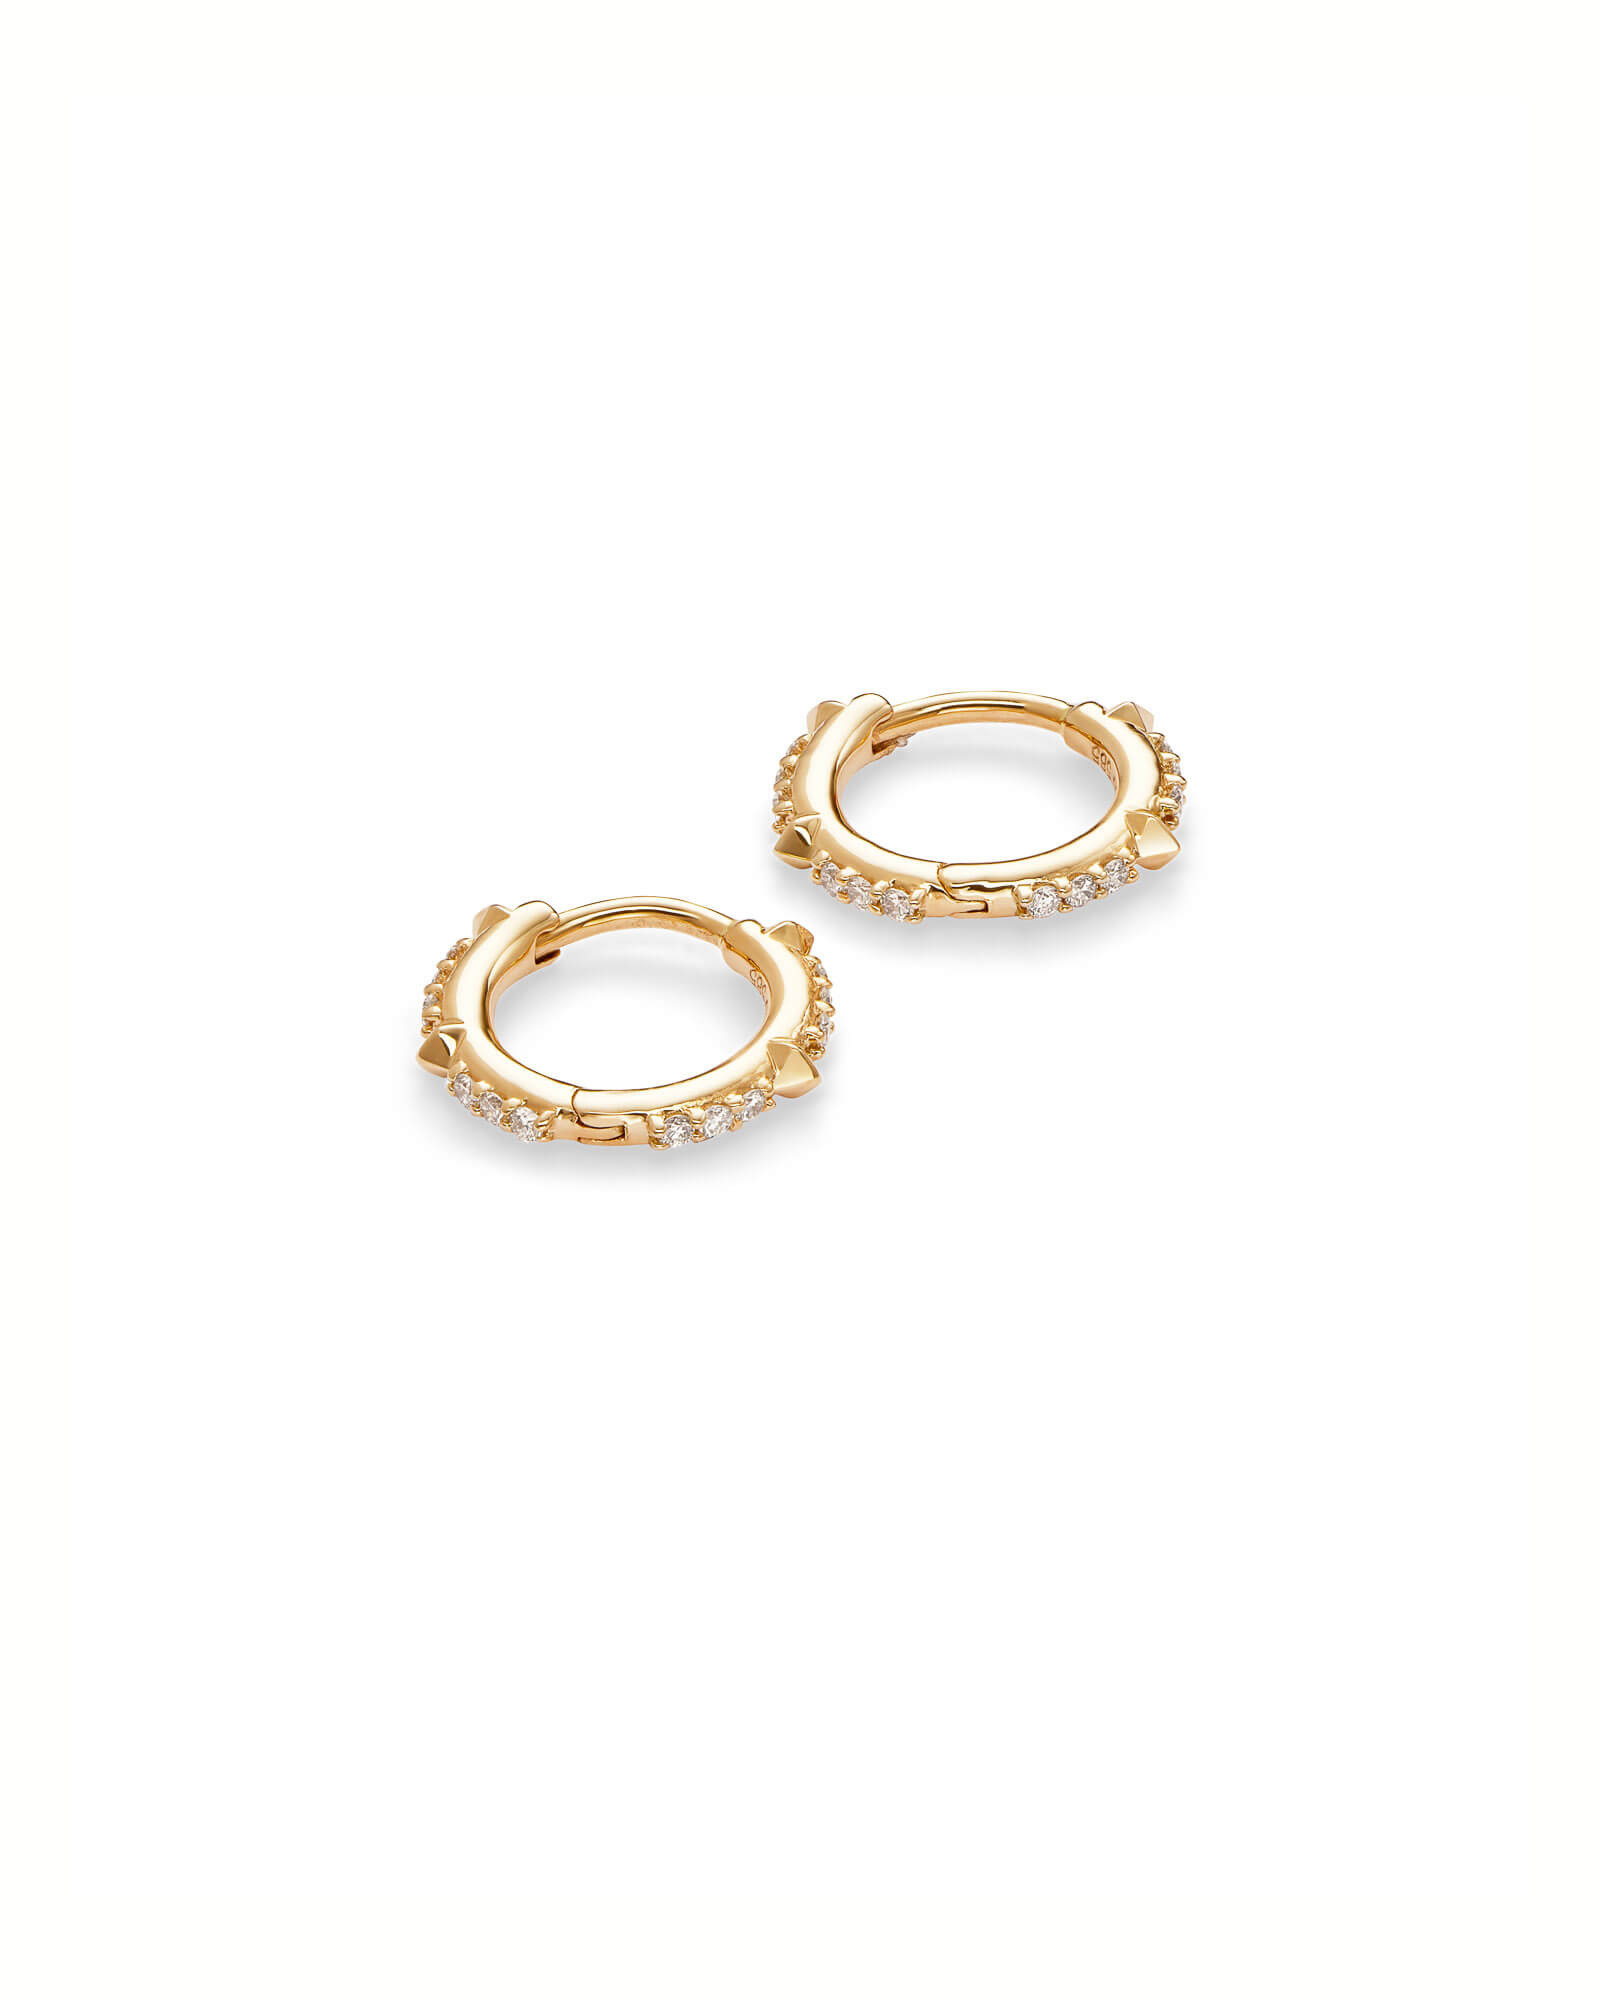 Jett 14k Yellow Gold Earrings in White Diamond